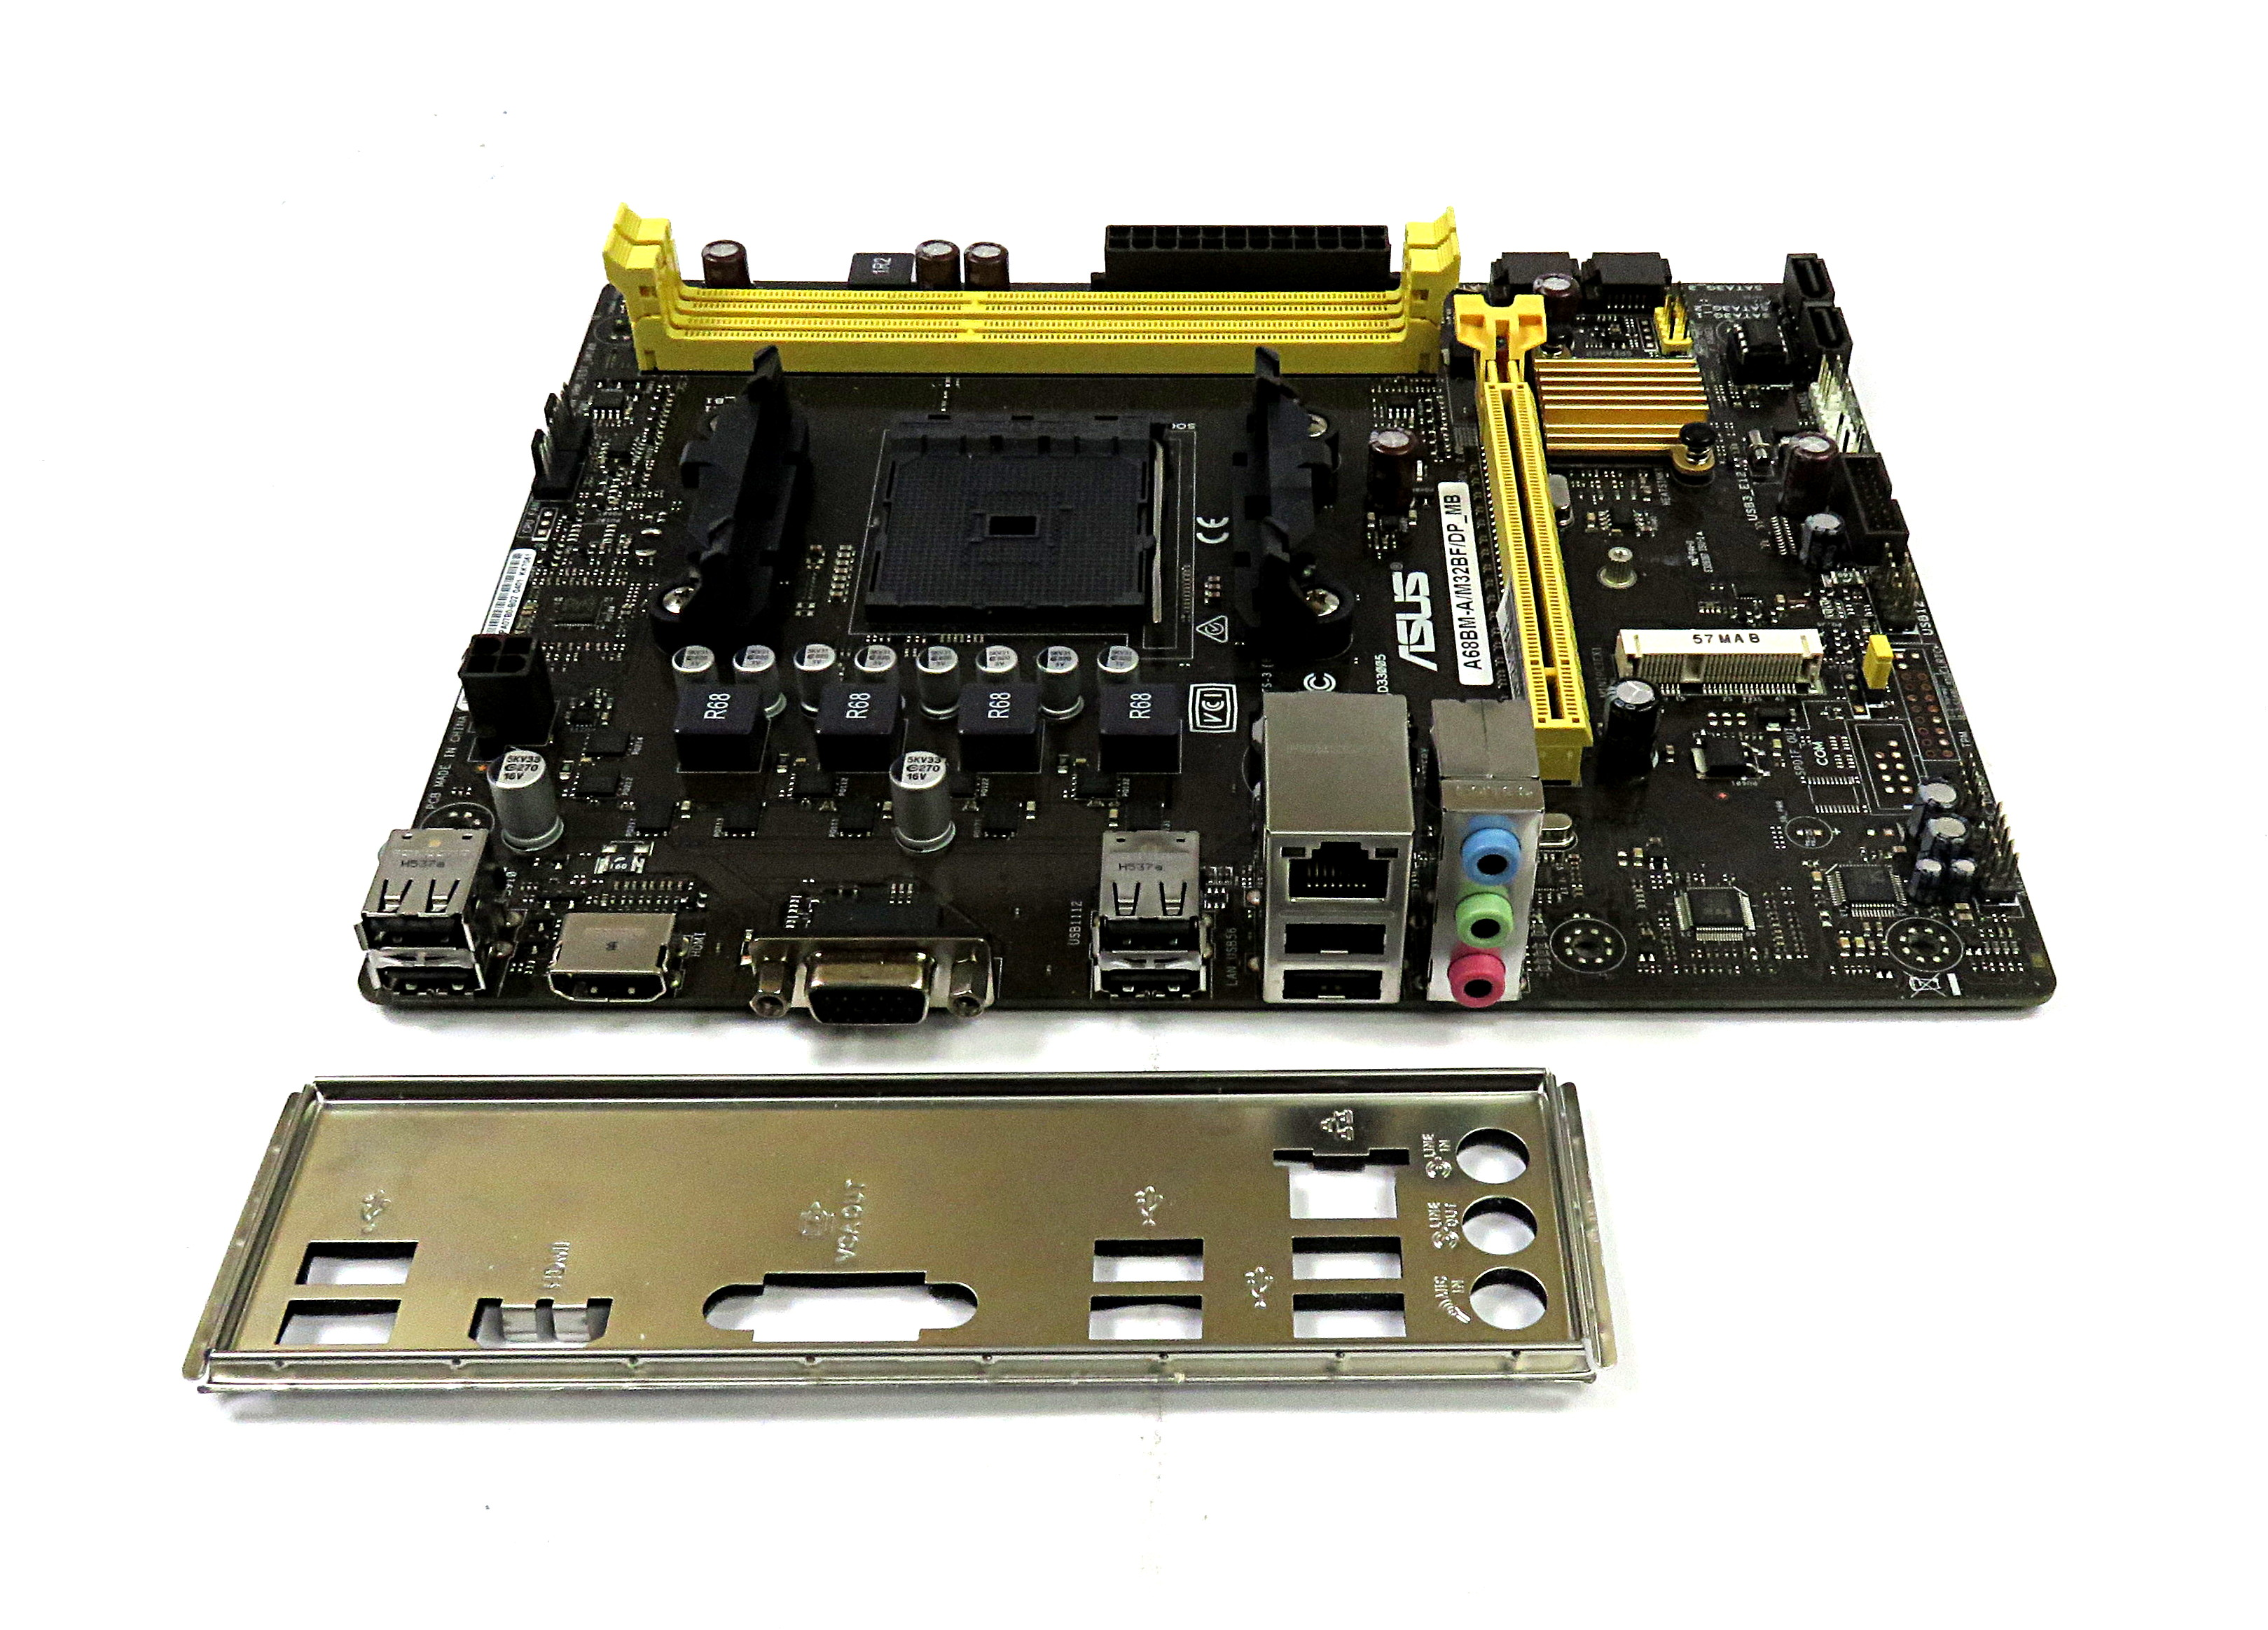 Asus M32bf Motherboard Photos Collections A68hm K Socket Fm2 Dp Mb Amd Matx 90pa07b0 M1xbn0 A68bm A